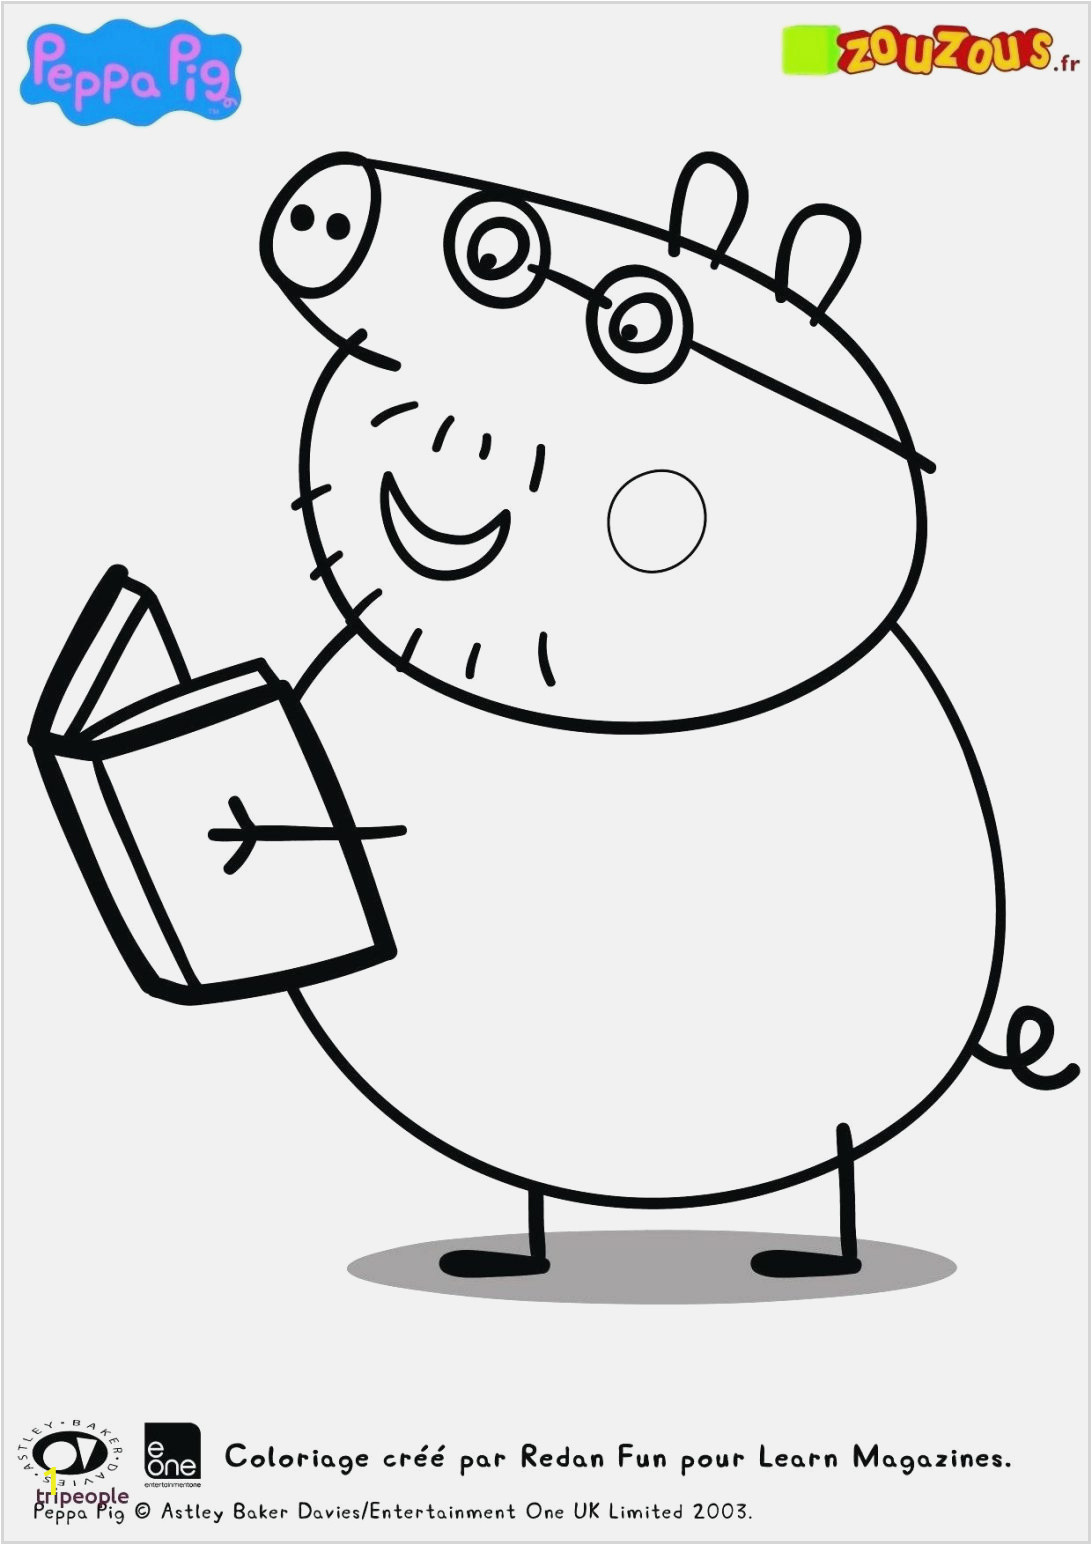 childrens printable coloring pages lisa frank peppa pig christmas animal games lion for adults the executive book walking doctor winter stress relief anatomy and physiology workbook